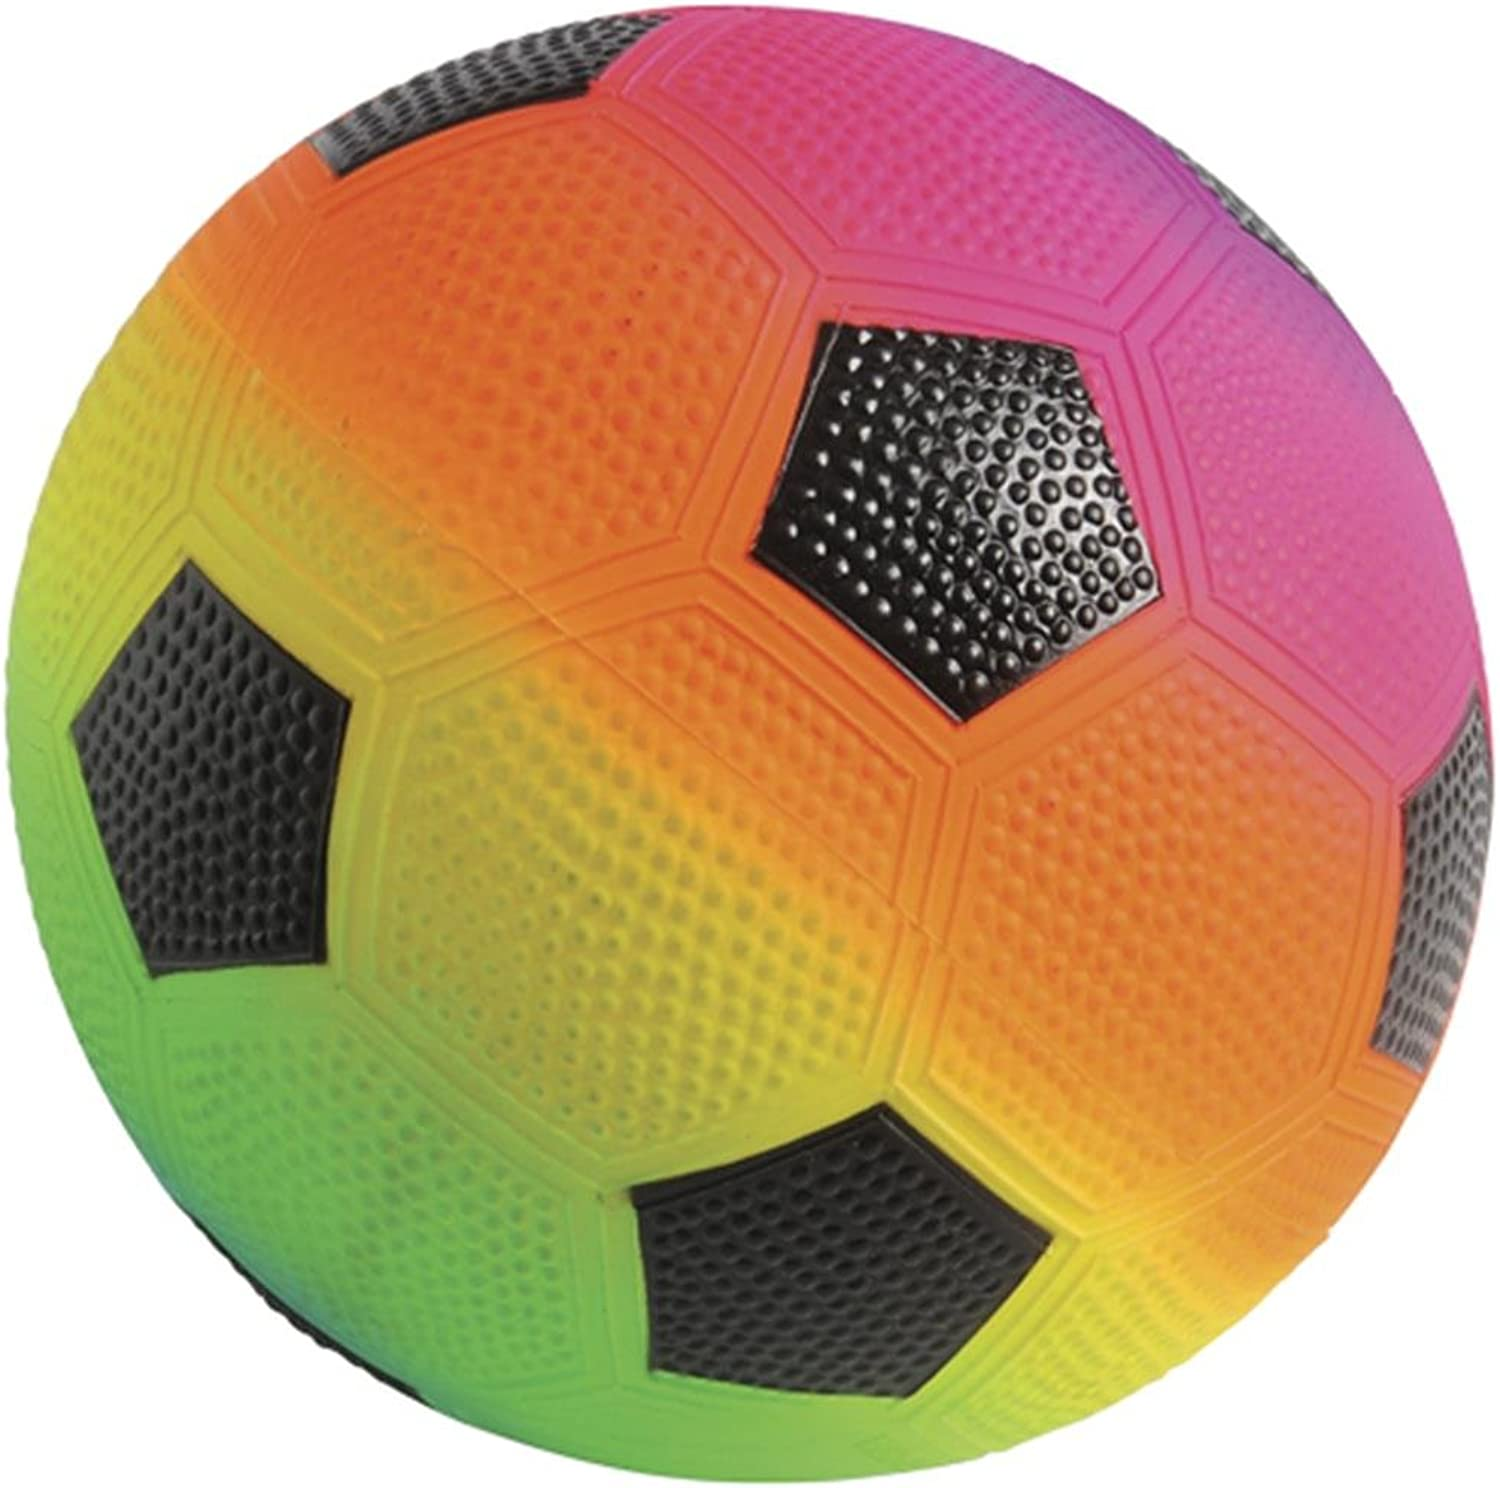 U.S. Toy Toy Activity and Play Balls, 6